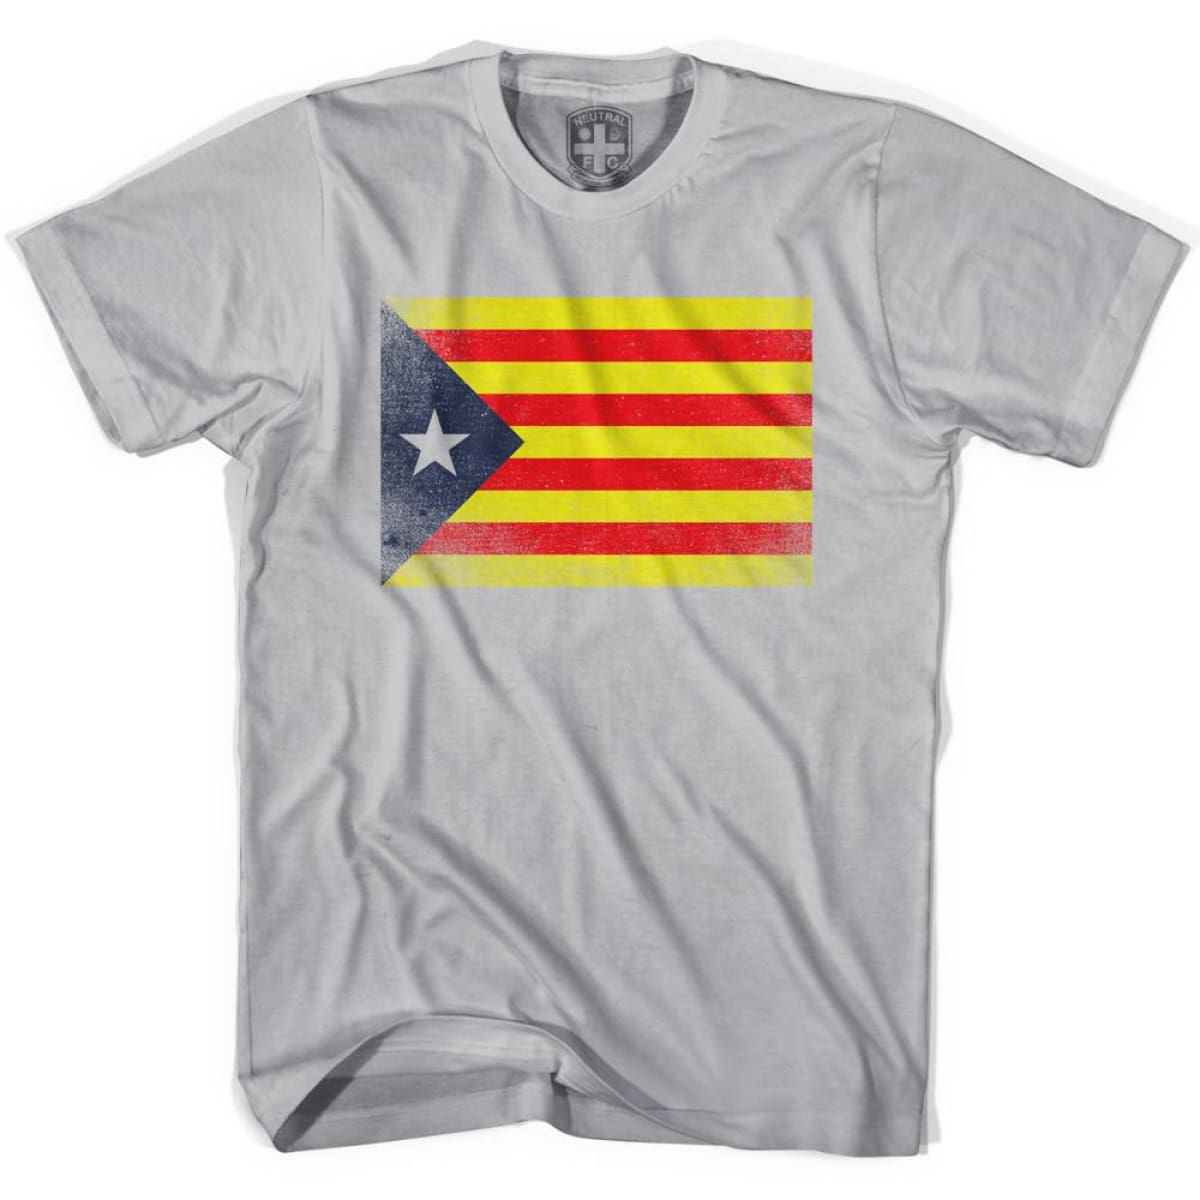 Catalonia Flag T-shirt - Cool Grey / Youth X-Small - Ultras Soccer T-shirts